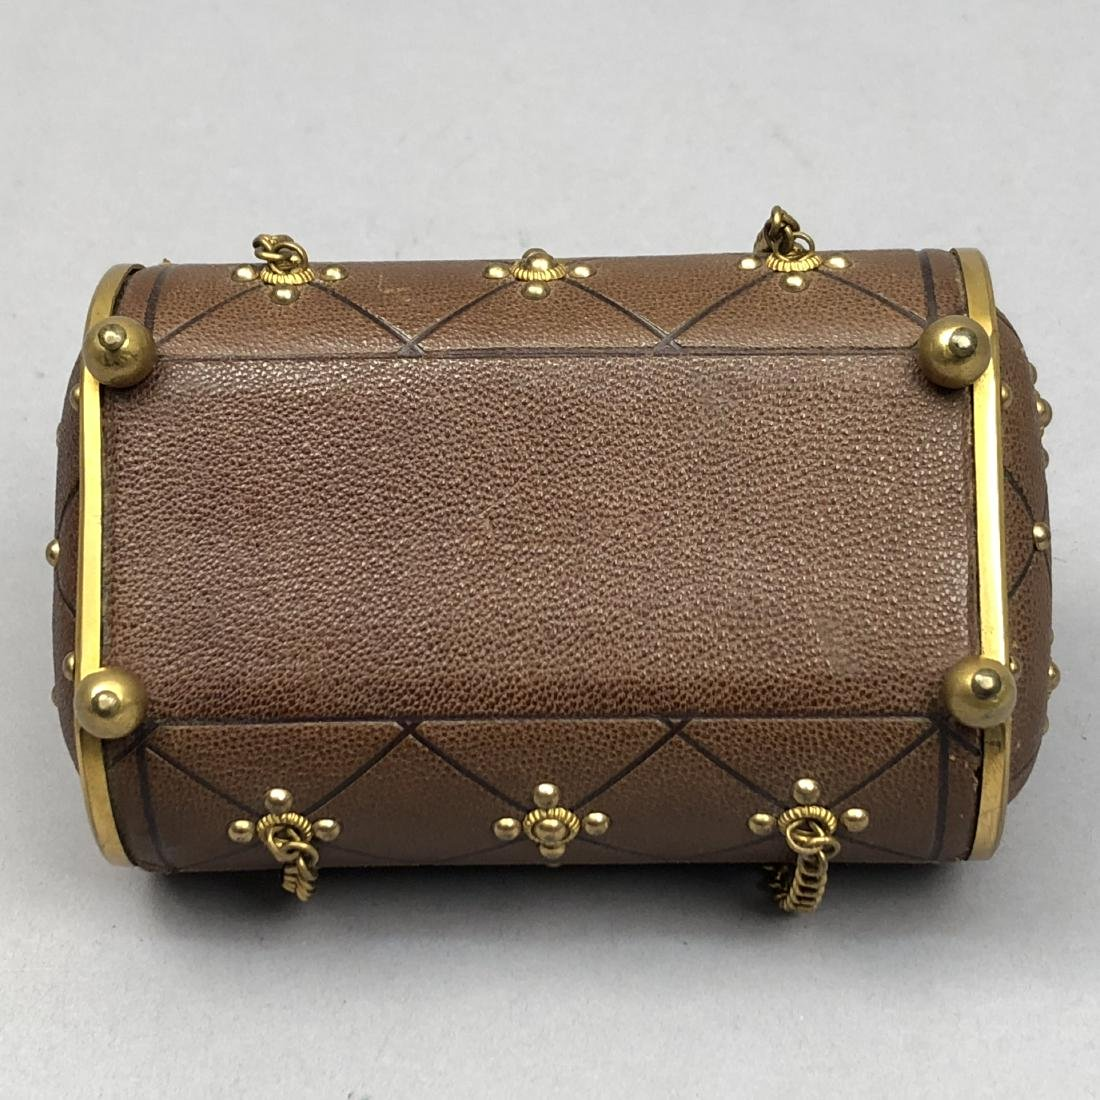 HINGED-LID LEATHER SEWING CASE, 1850 - 1870 - 4